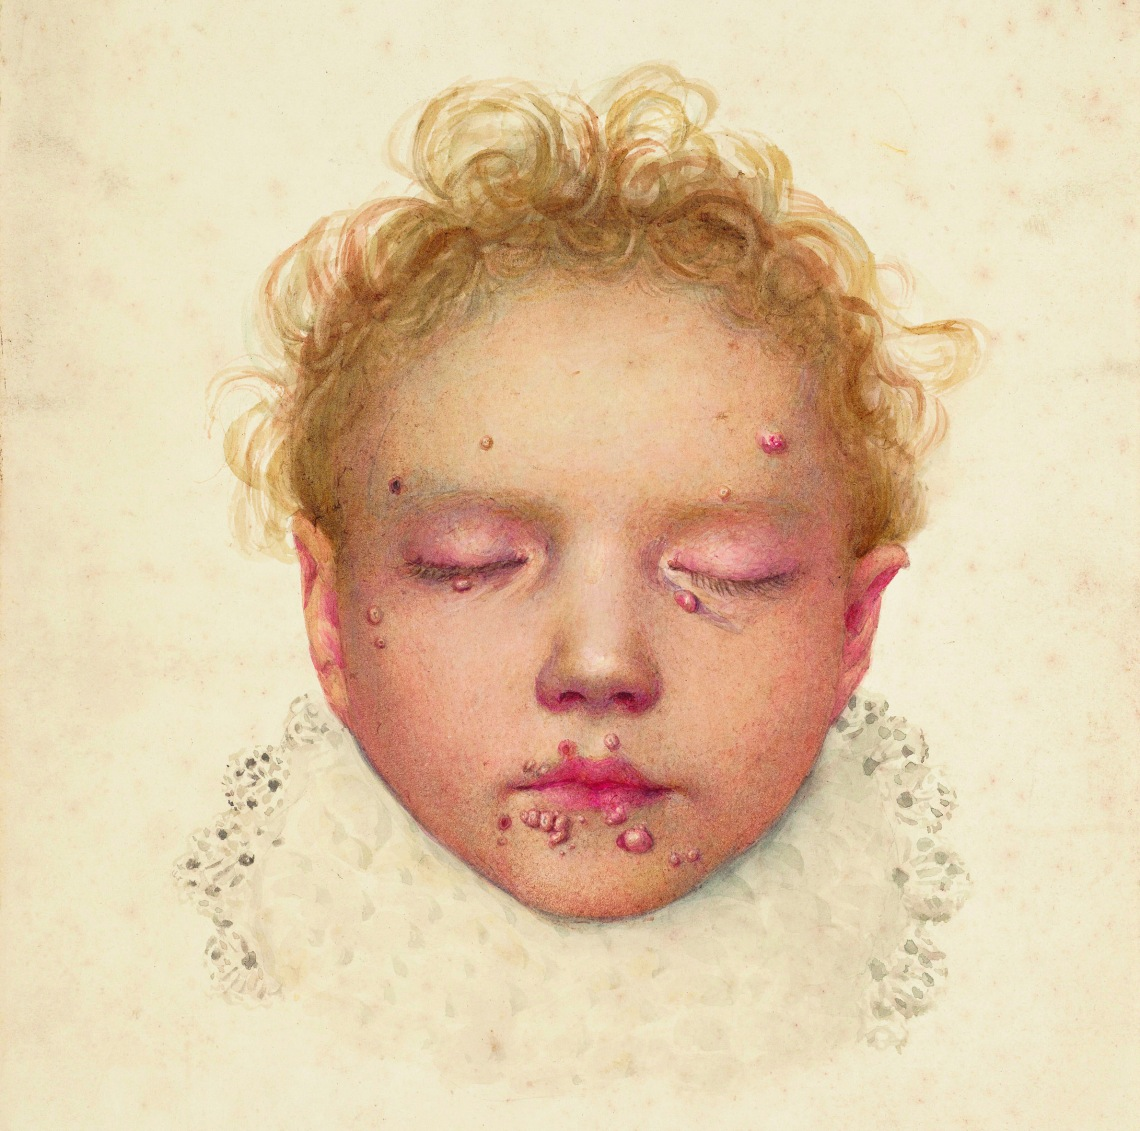 The head of a child with blisters and other lesions affecting the skin. (via)